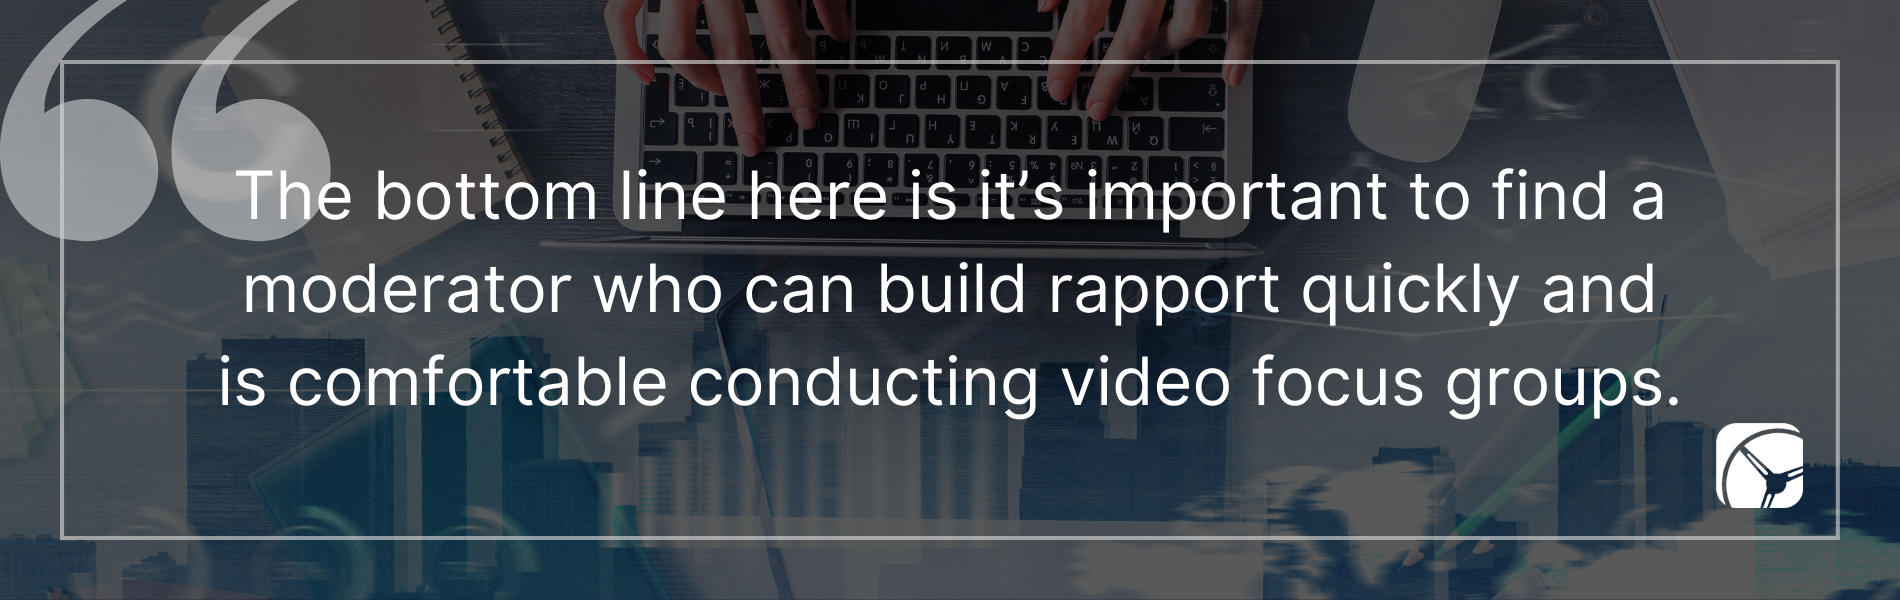 The bottom line here is it's important to find a moderator who can build rapport quickly and is comfortable conducting video focus groups.